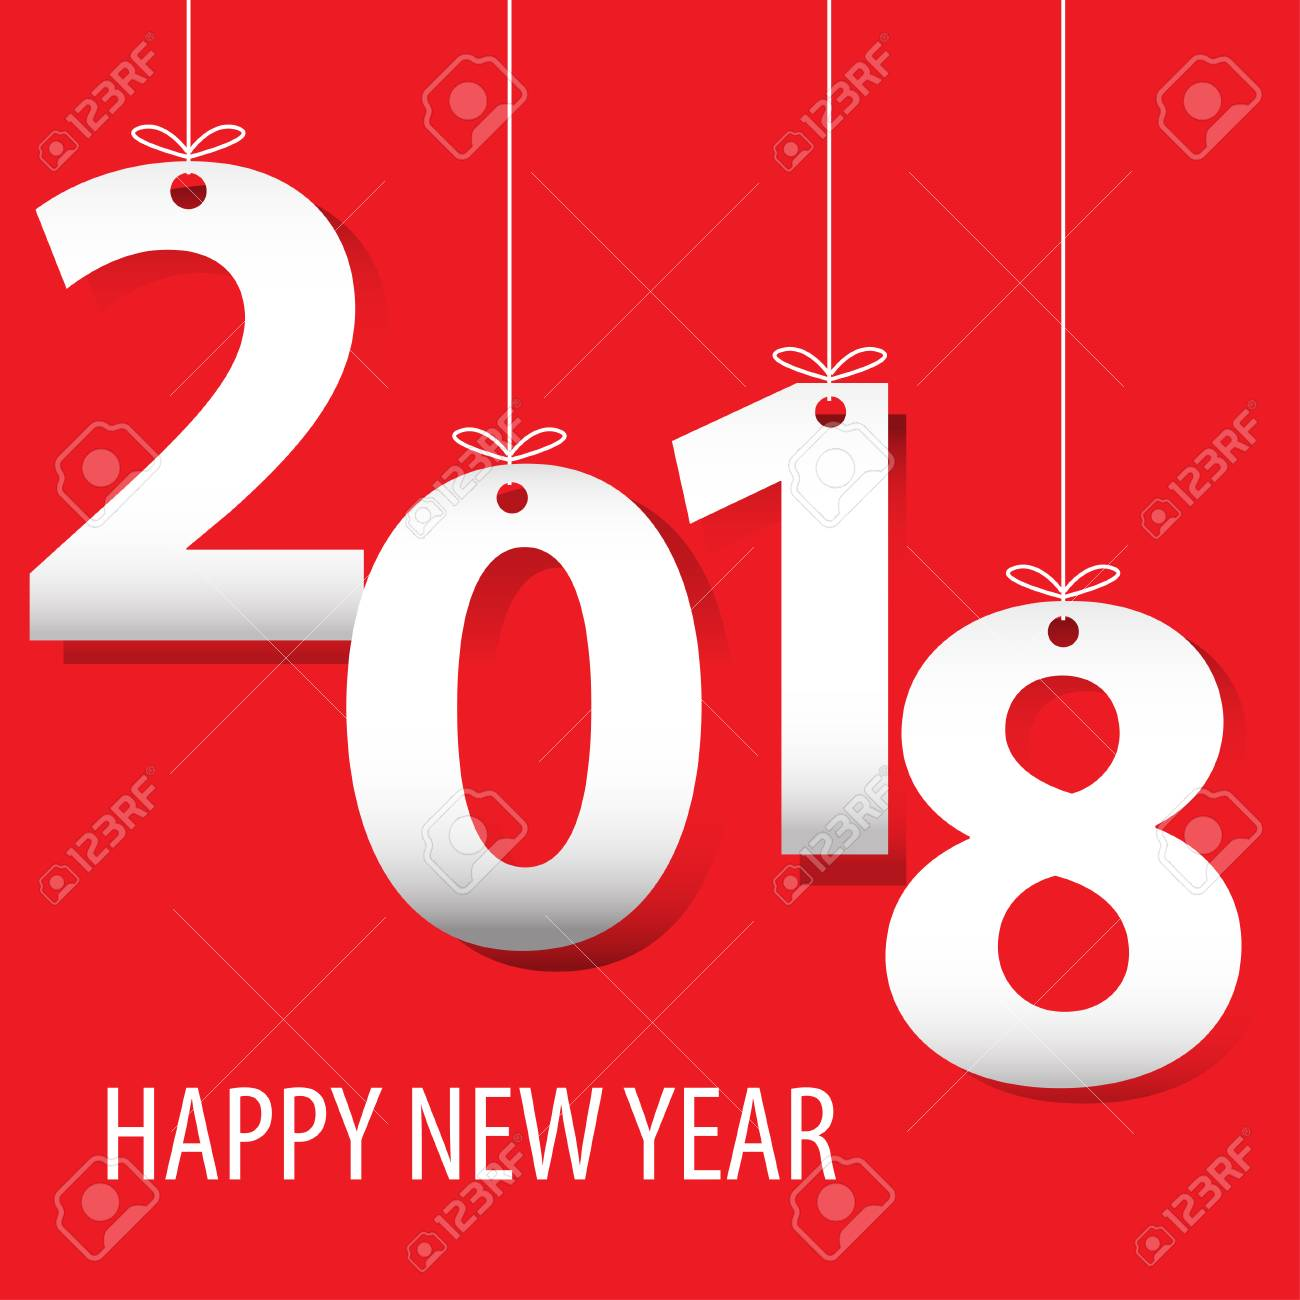 happy new year 2018 white number paper cut on red background design for countdown holiday festival